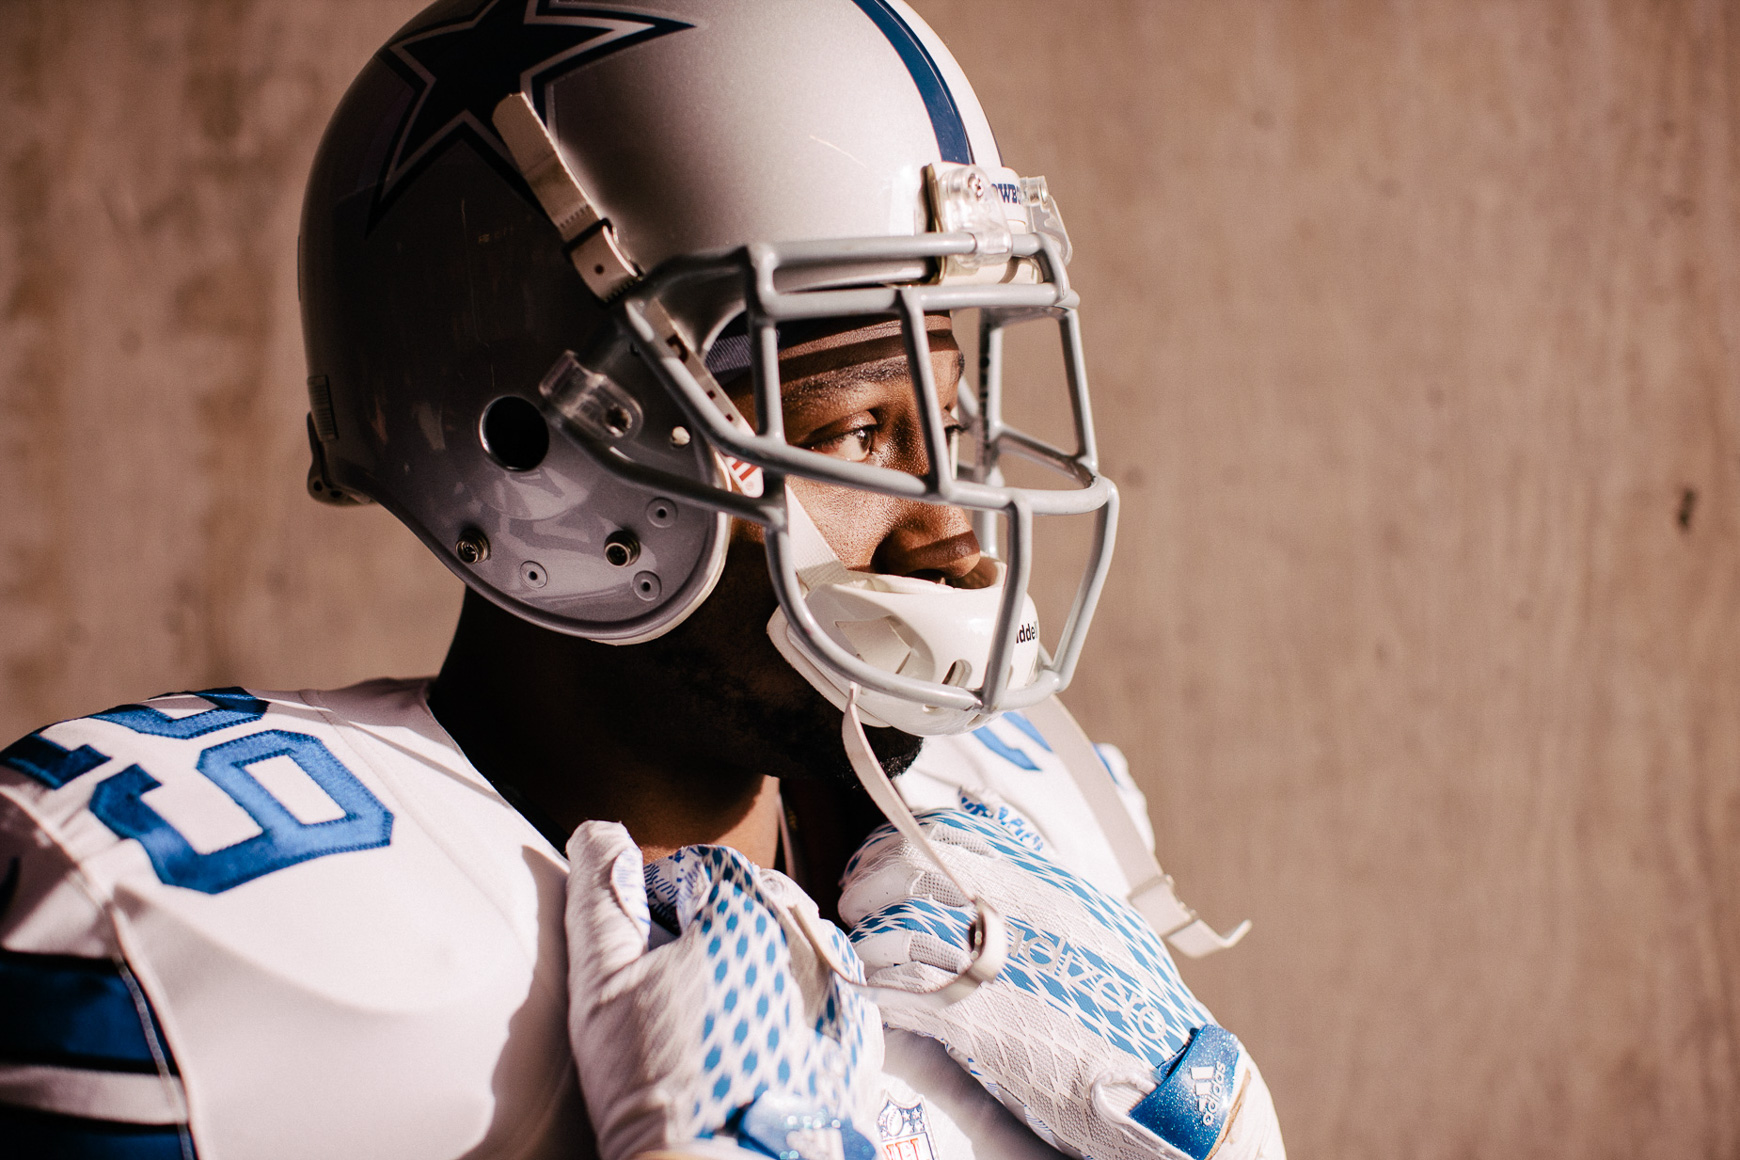 20141220_AdidasBTS_DeMarcoMurray_004_Web